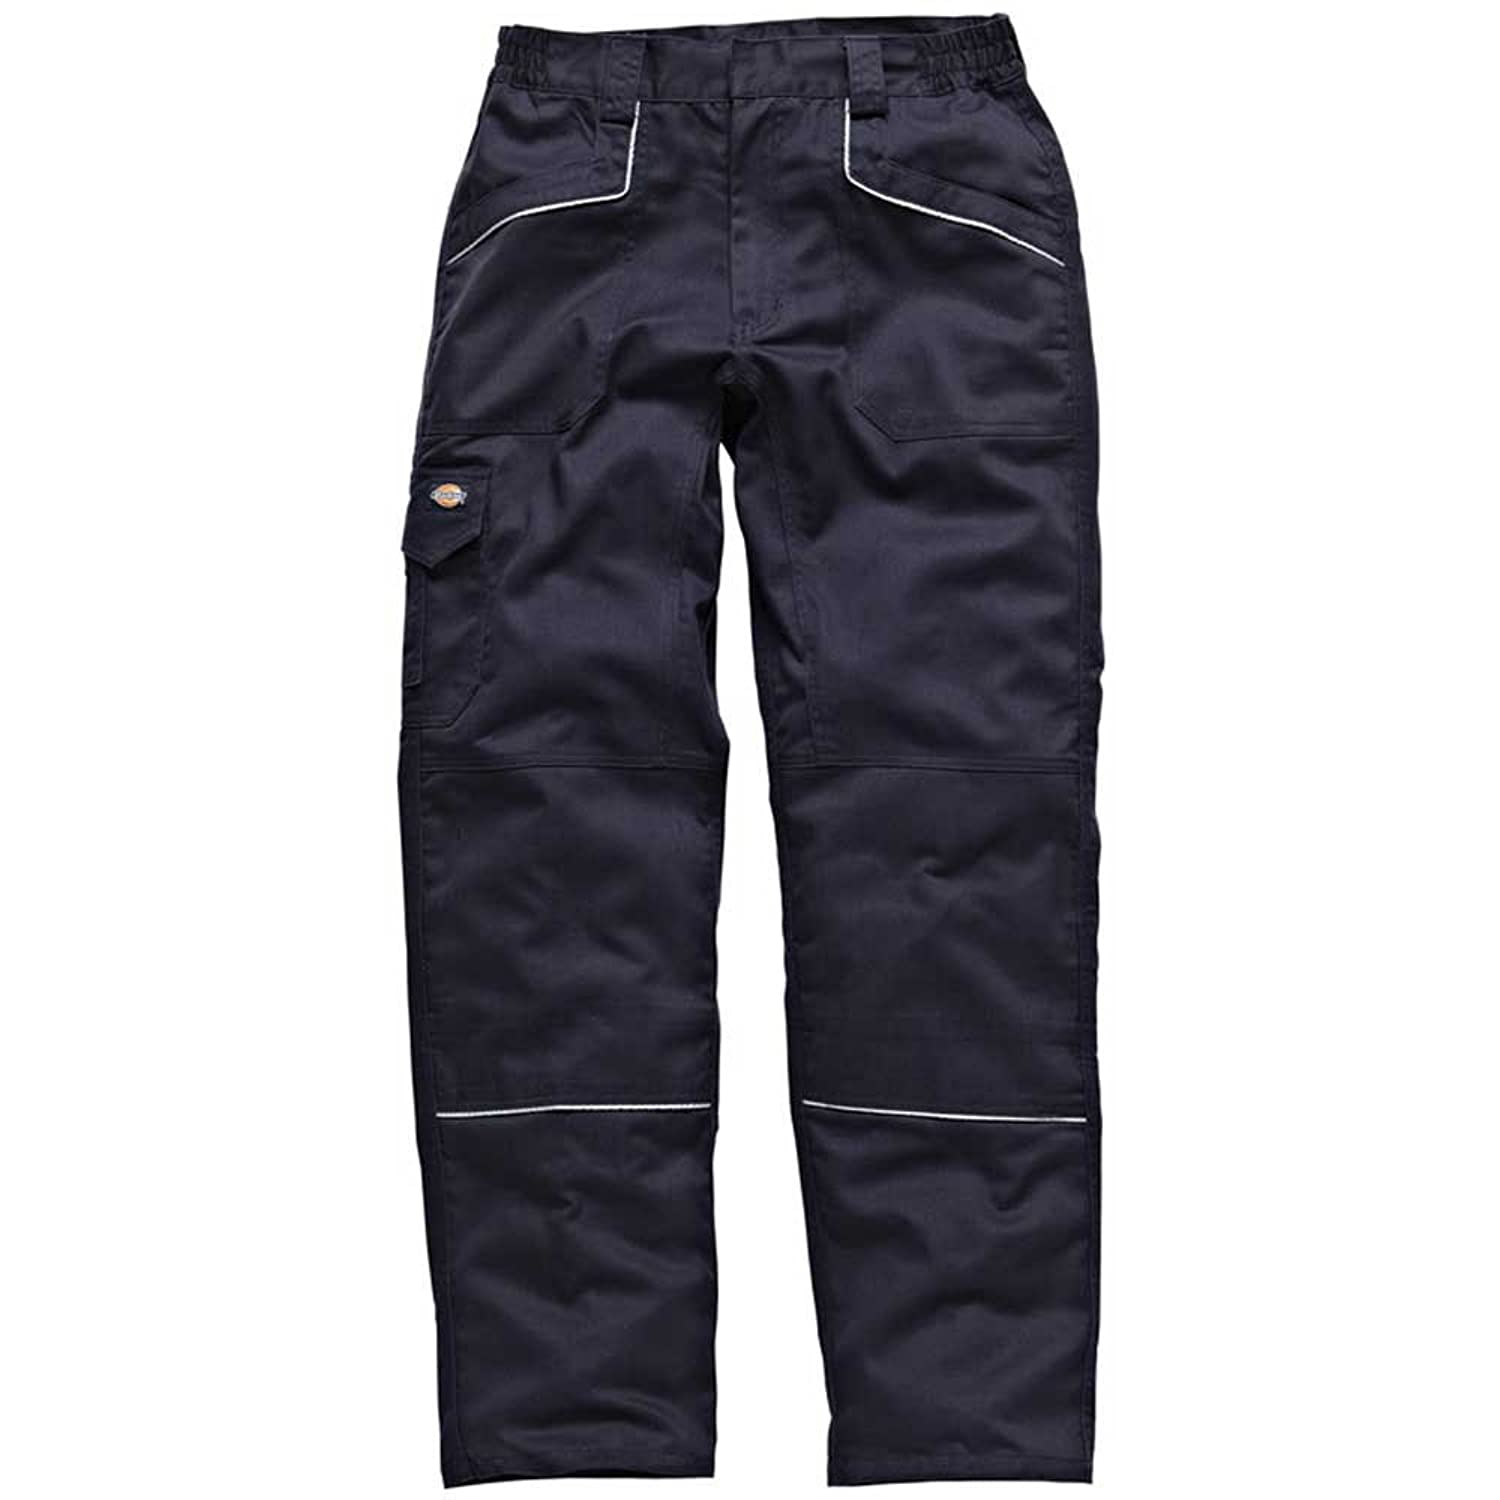 Dickies IND260 Trousers, Navy Blue, 26